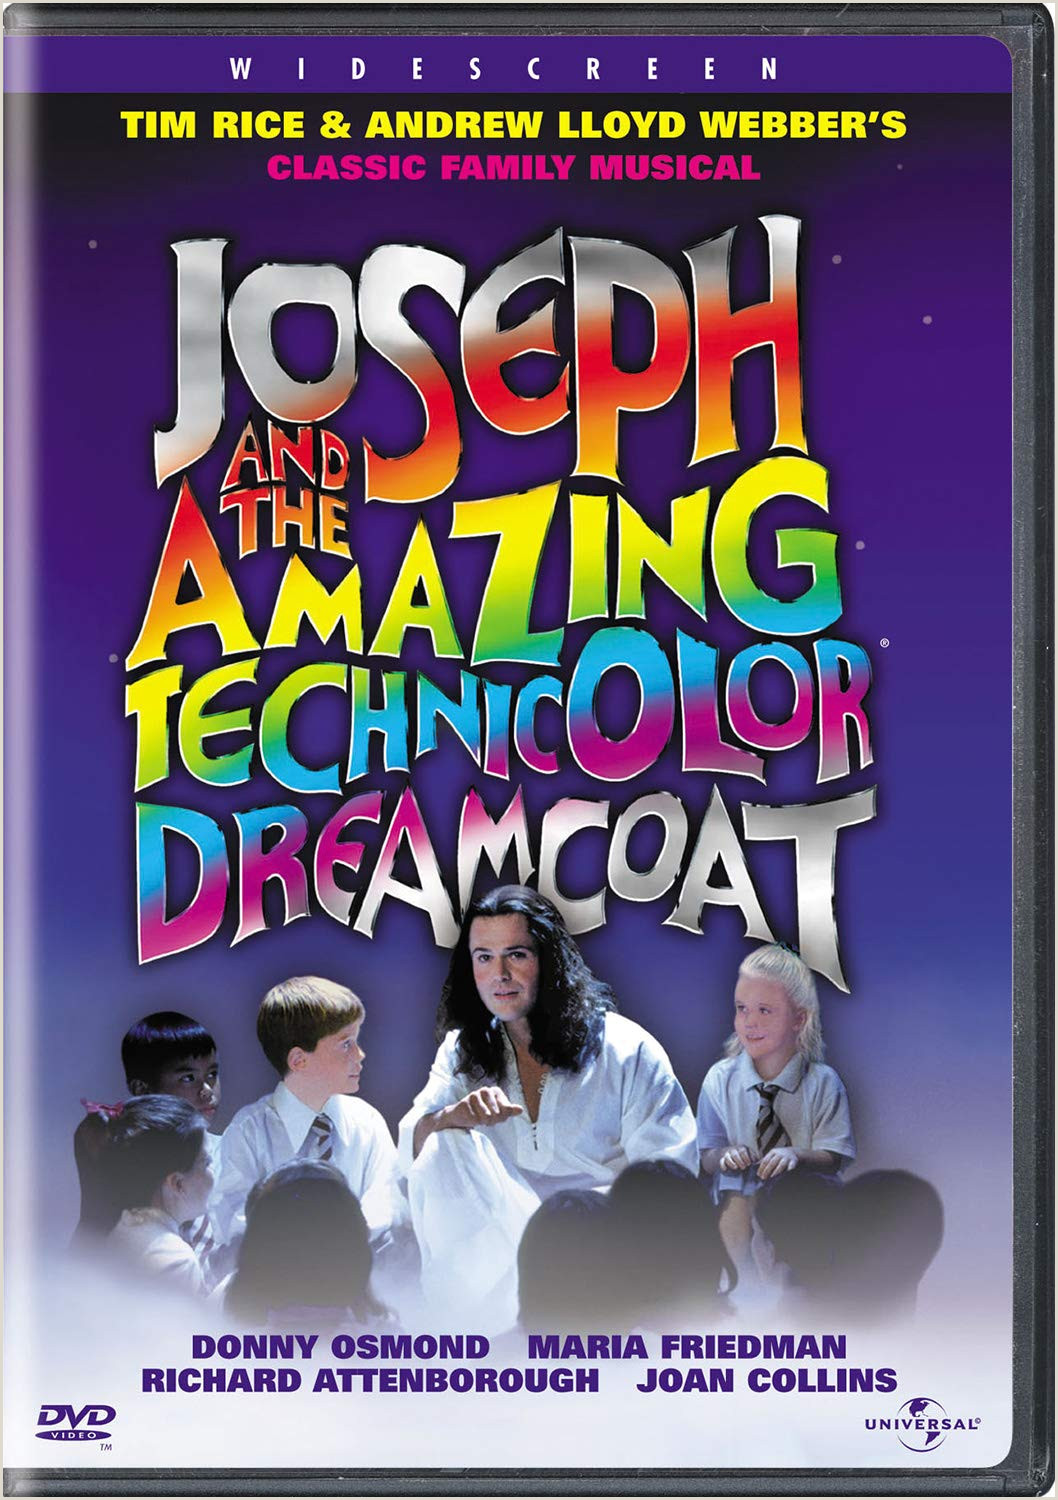 Pull Up Poster Amazon Joseph And The Amazing Technicolor Dreamcoat